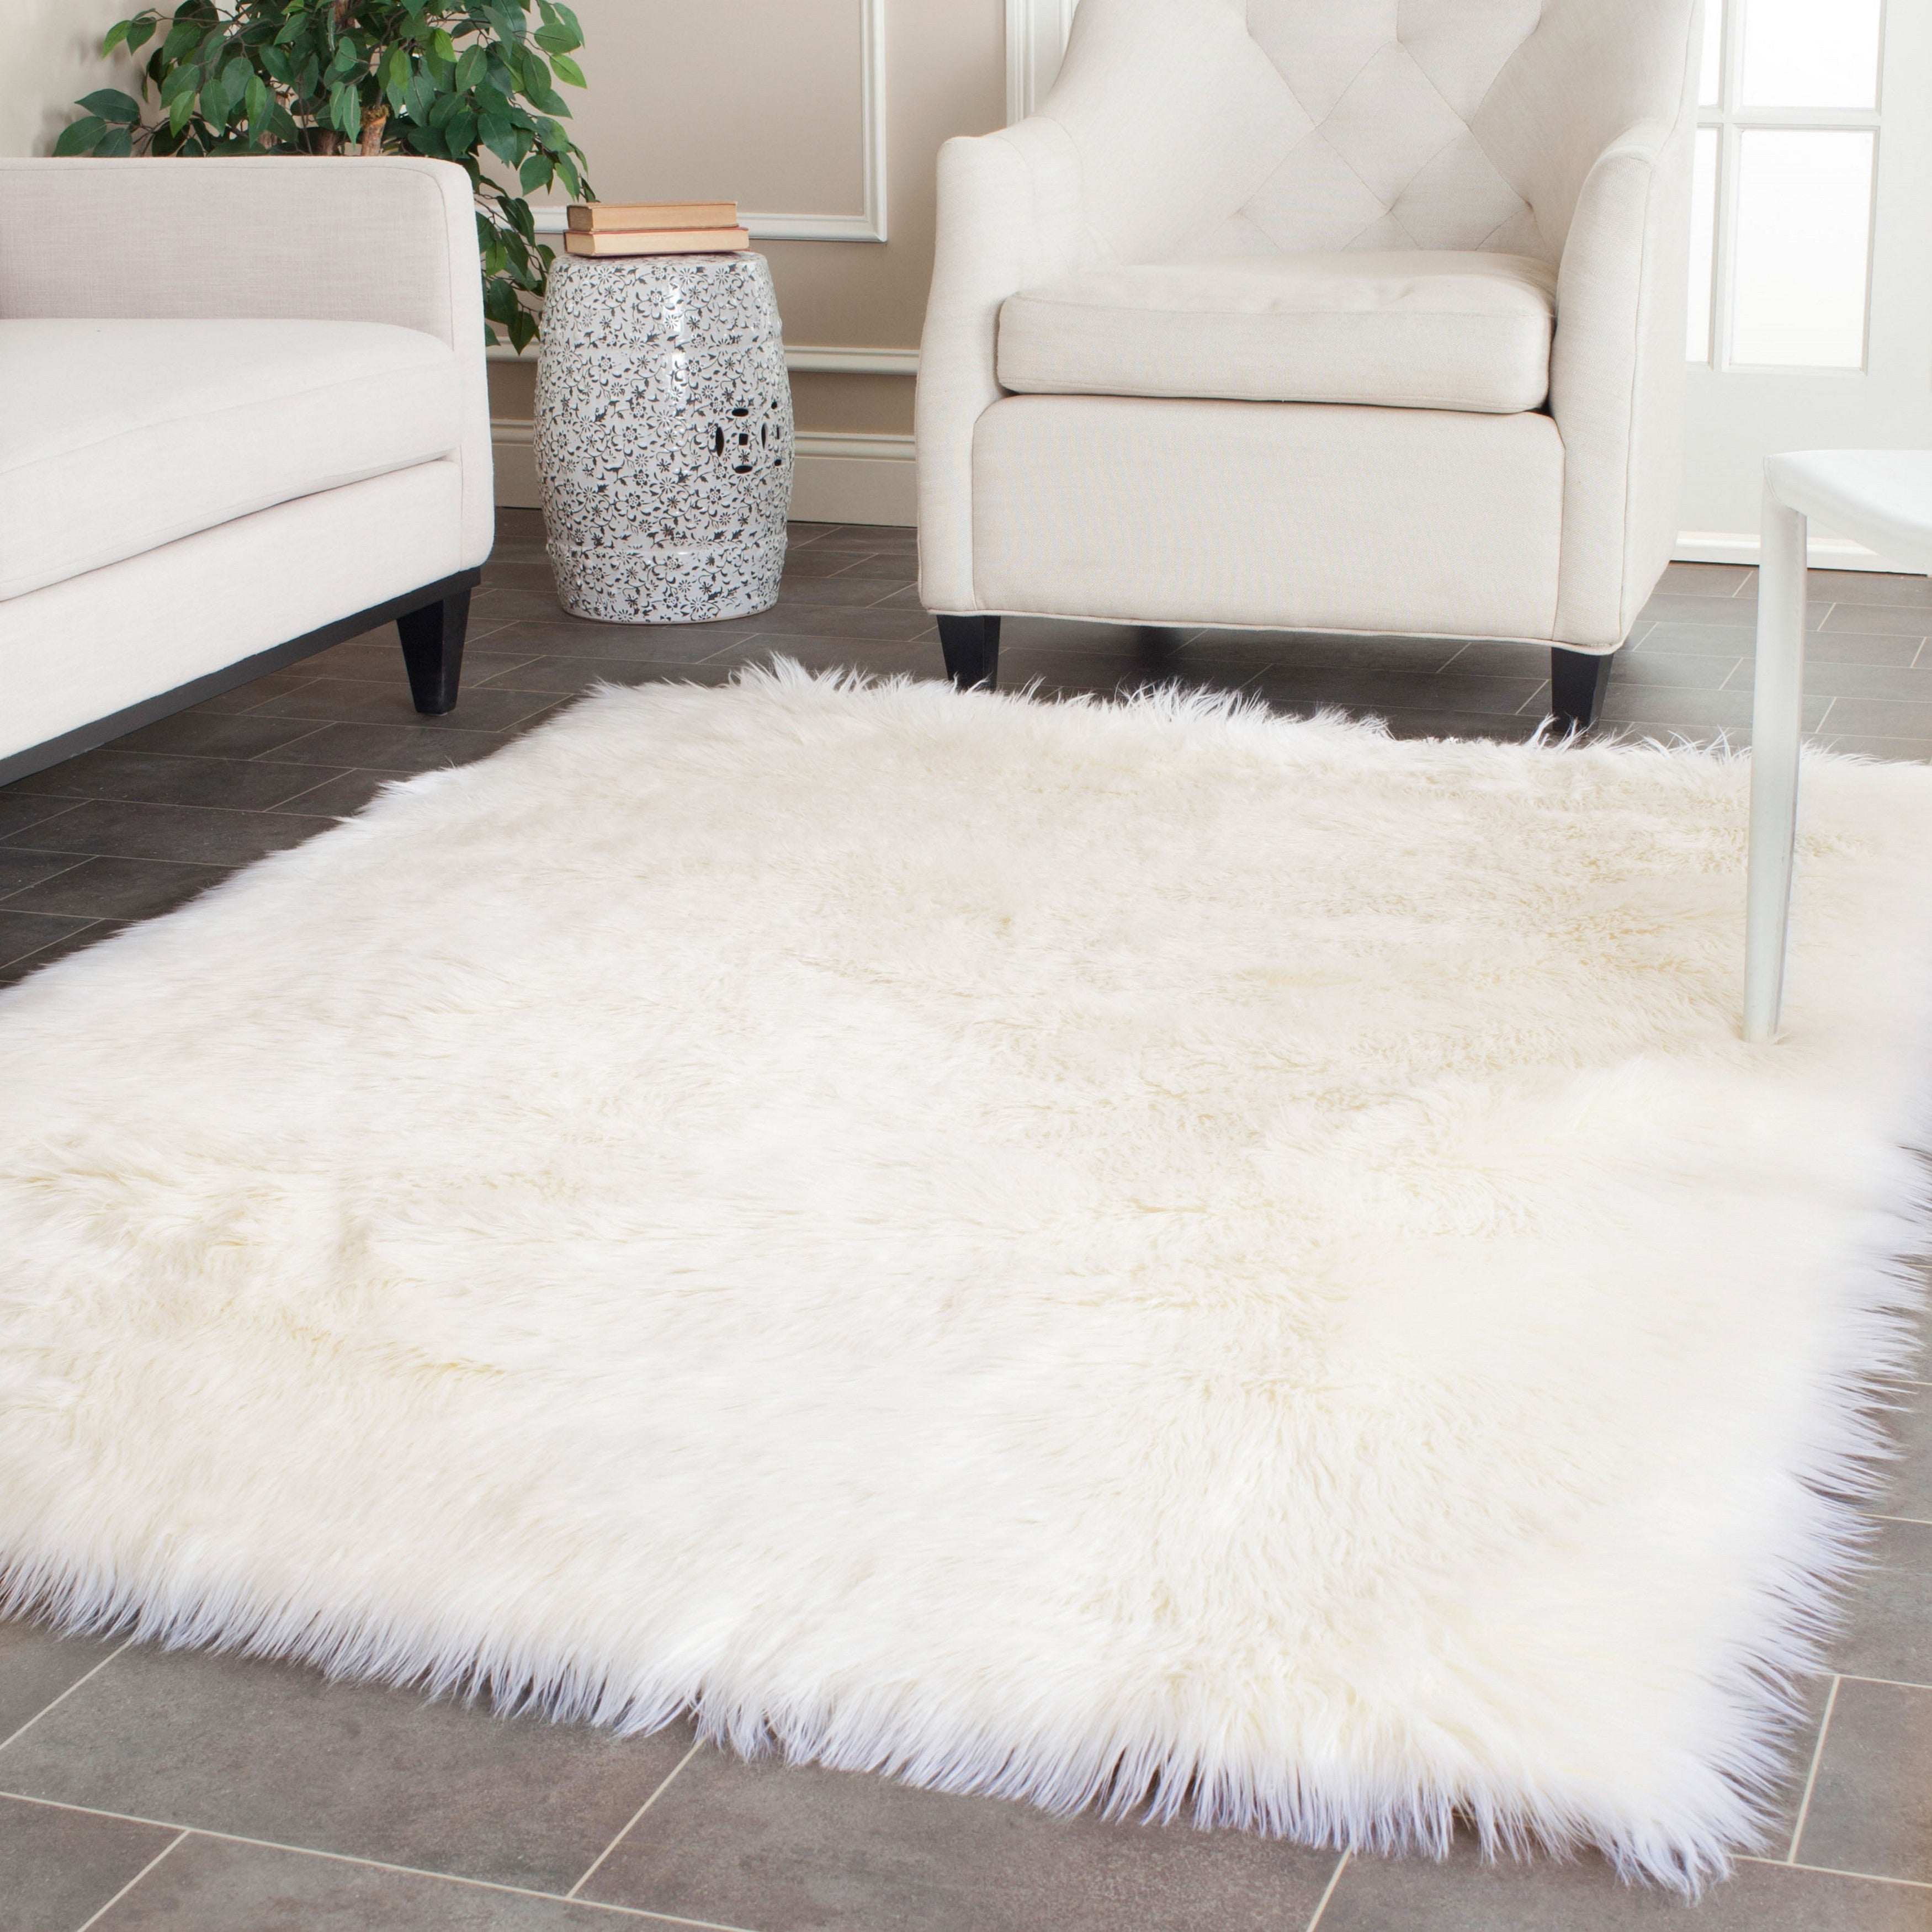 Shop For Safavieh Faux Sheep Skin Alexandria 2 4 Inch Thick Rug Get Free Delivery On Everything At Overstock Your Online Home Decor Store Get 5 In Rewards With Club O 13311324